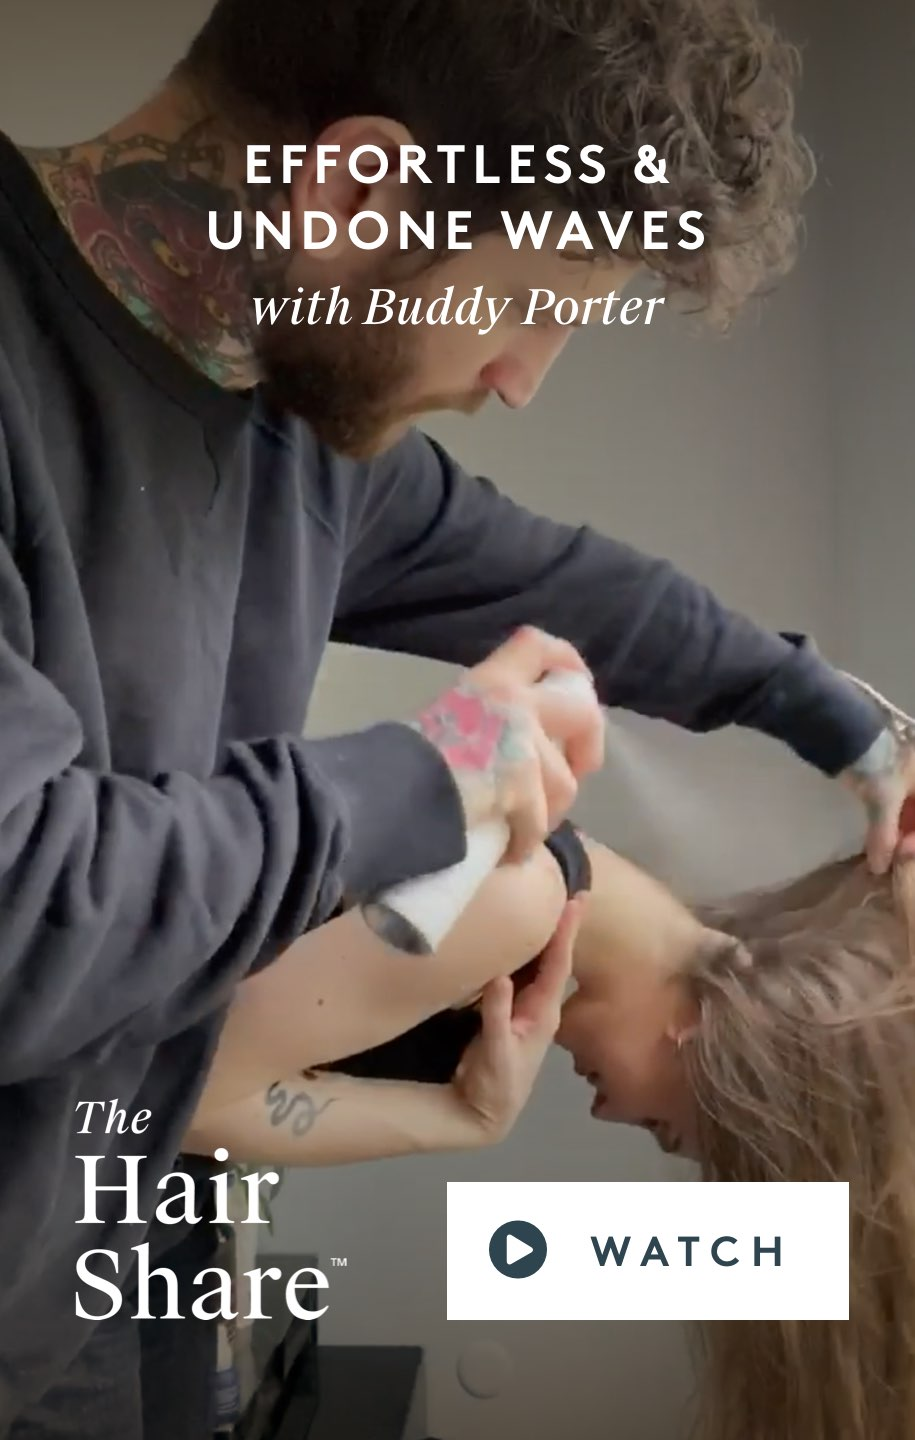 Effortless & Undone Waves with Buddy Porter